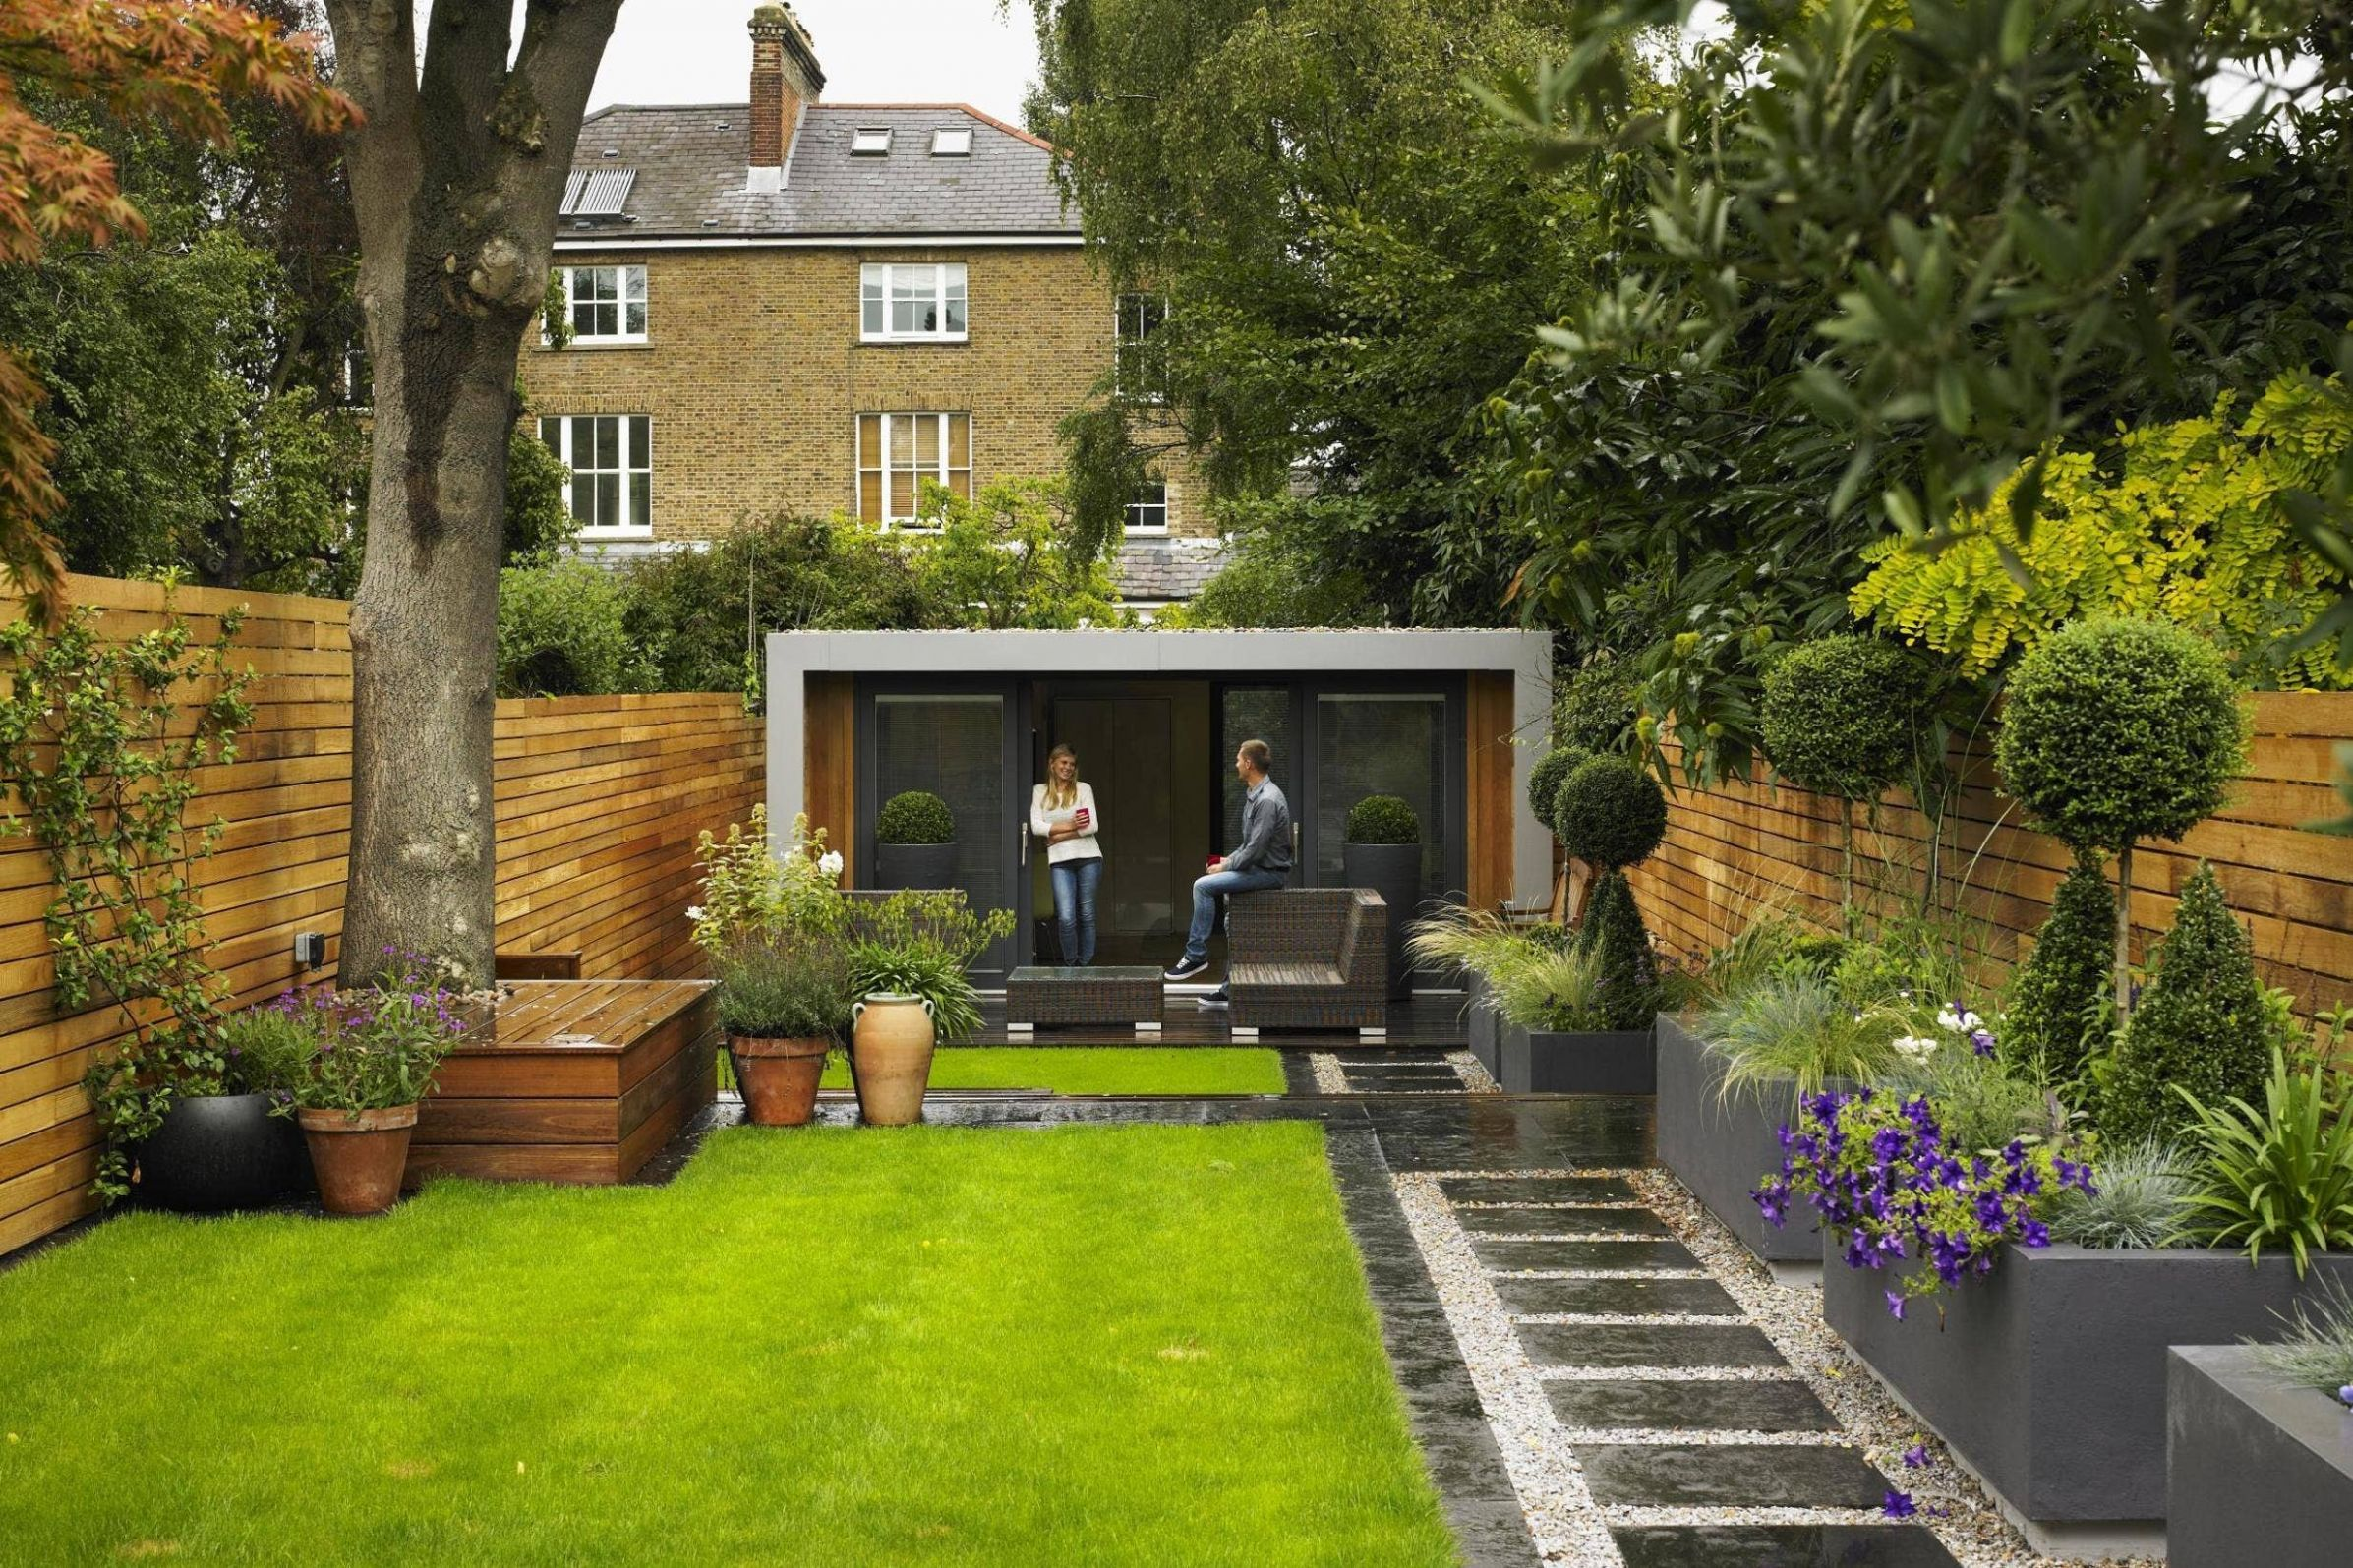 Flipboard: Home office ideas: garden 'rooms' offer extra space in ...